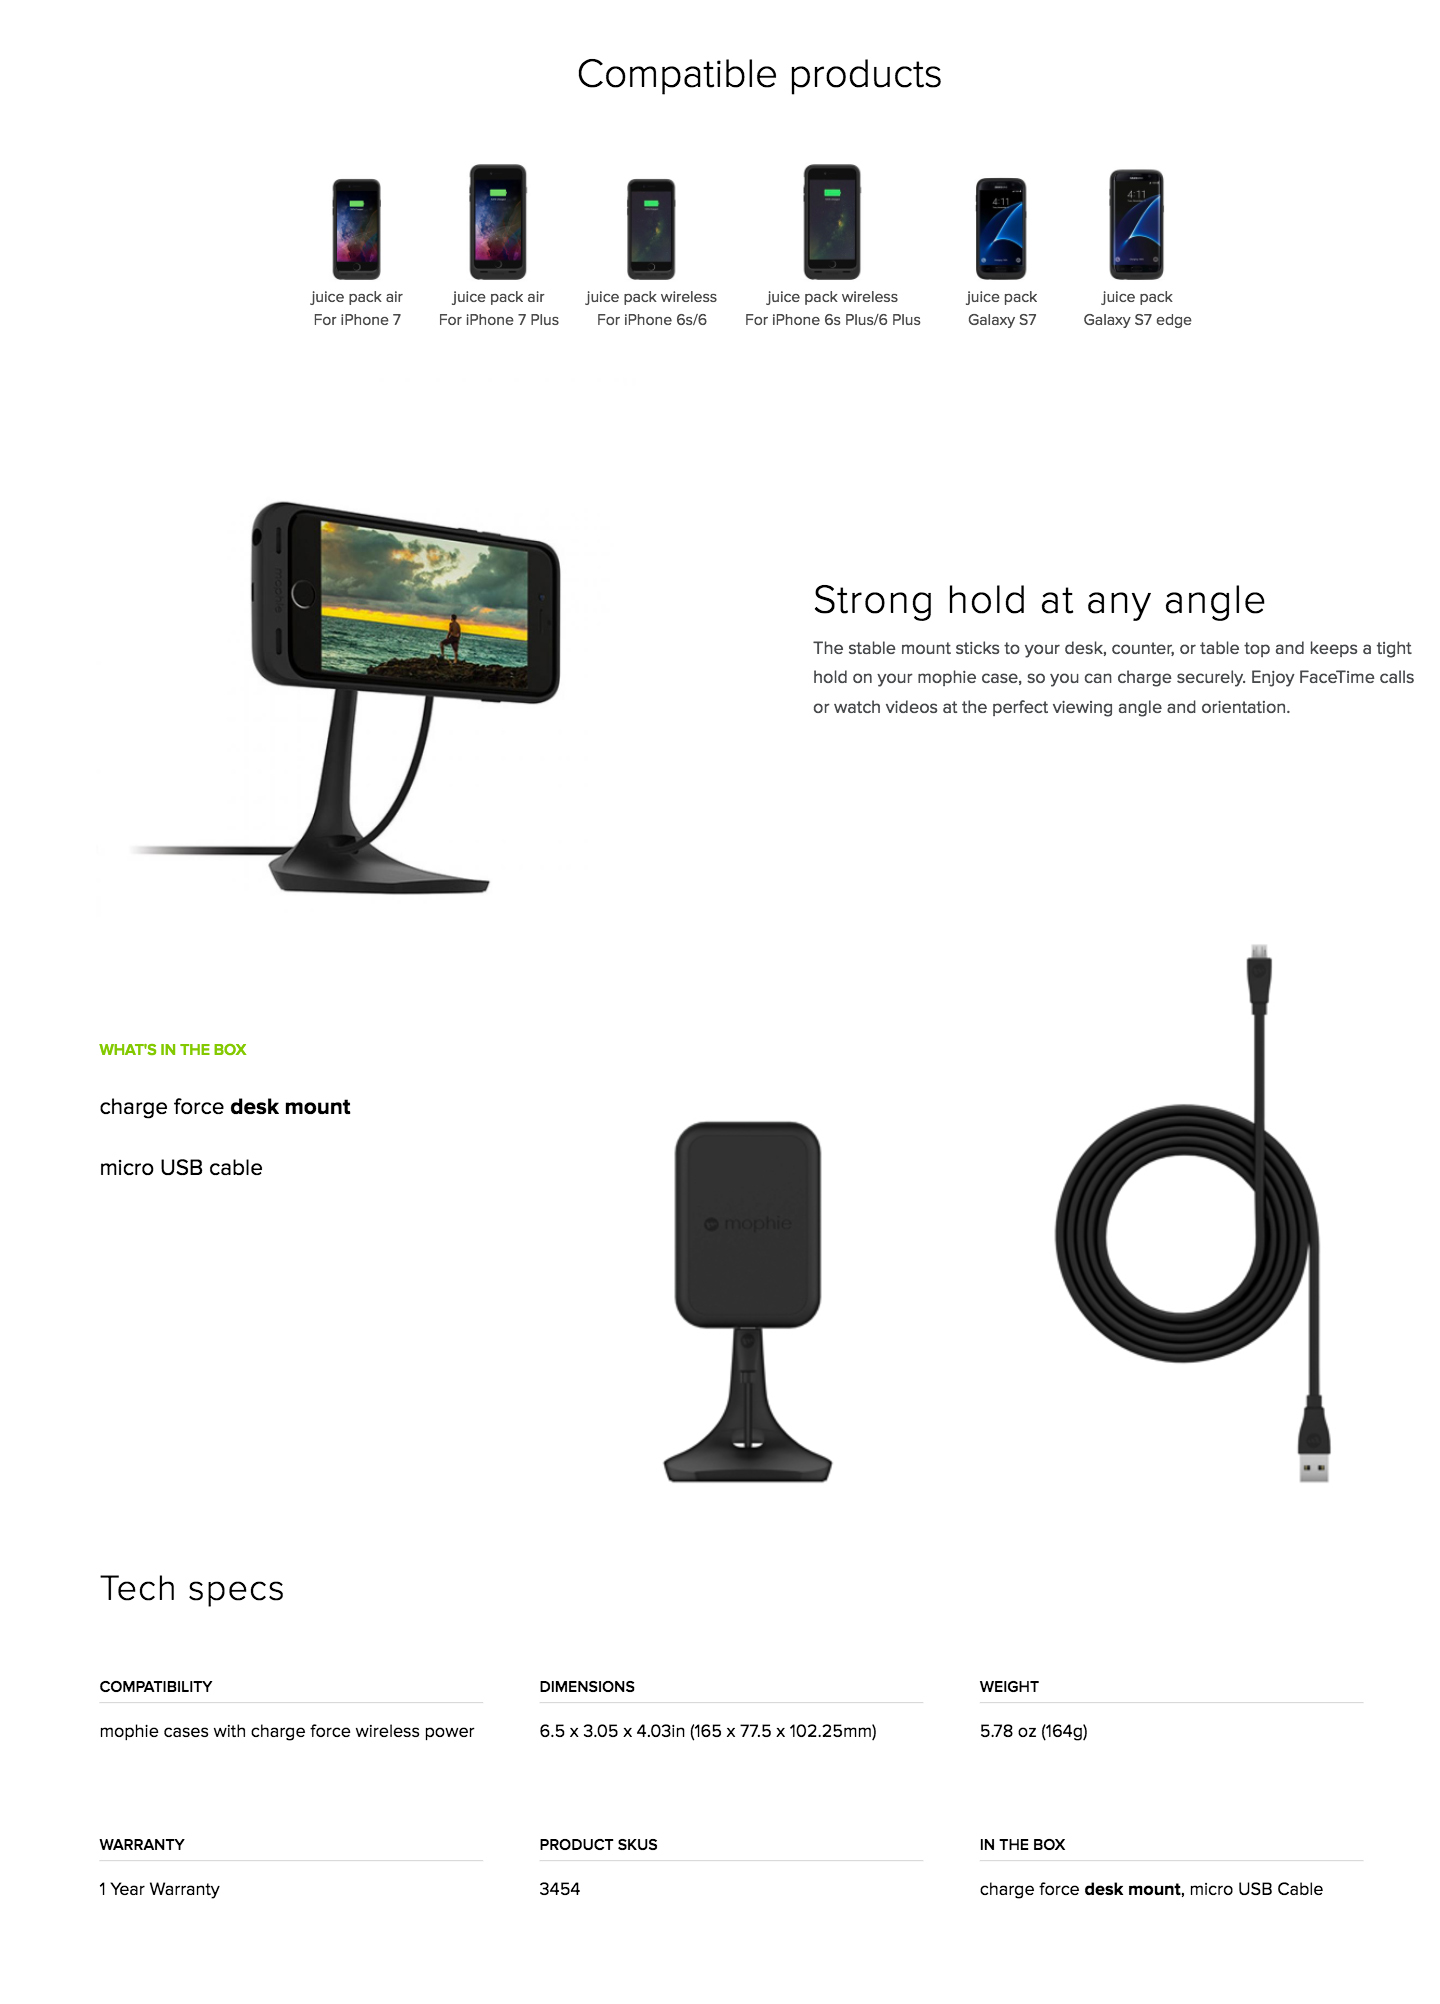 mophie-charge-force-wireless-charging-desk-mount-qi-enabled-devices-black-3454_WRLS-DESK-BLK-malaysia-unit-3